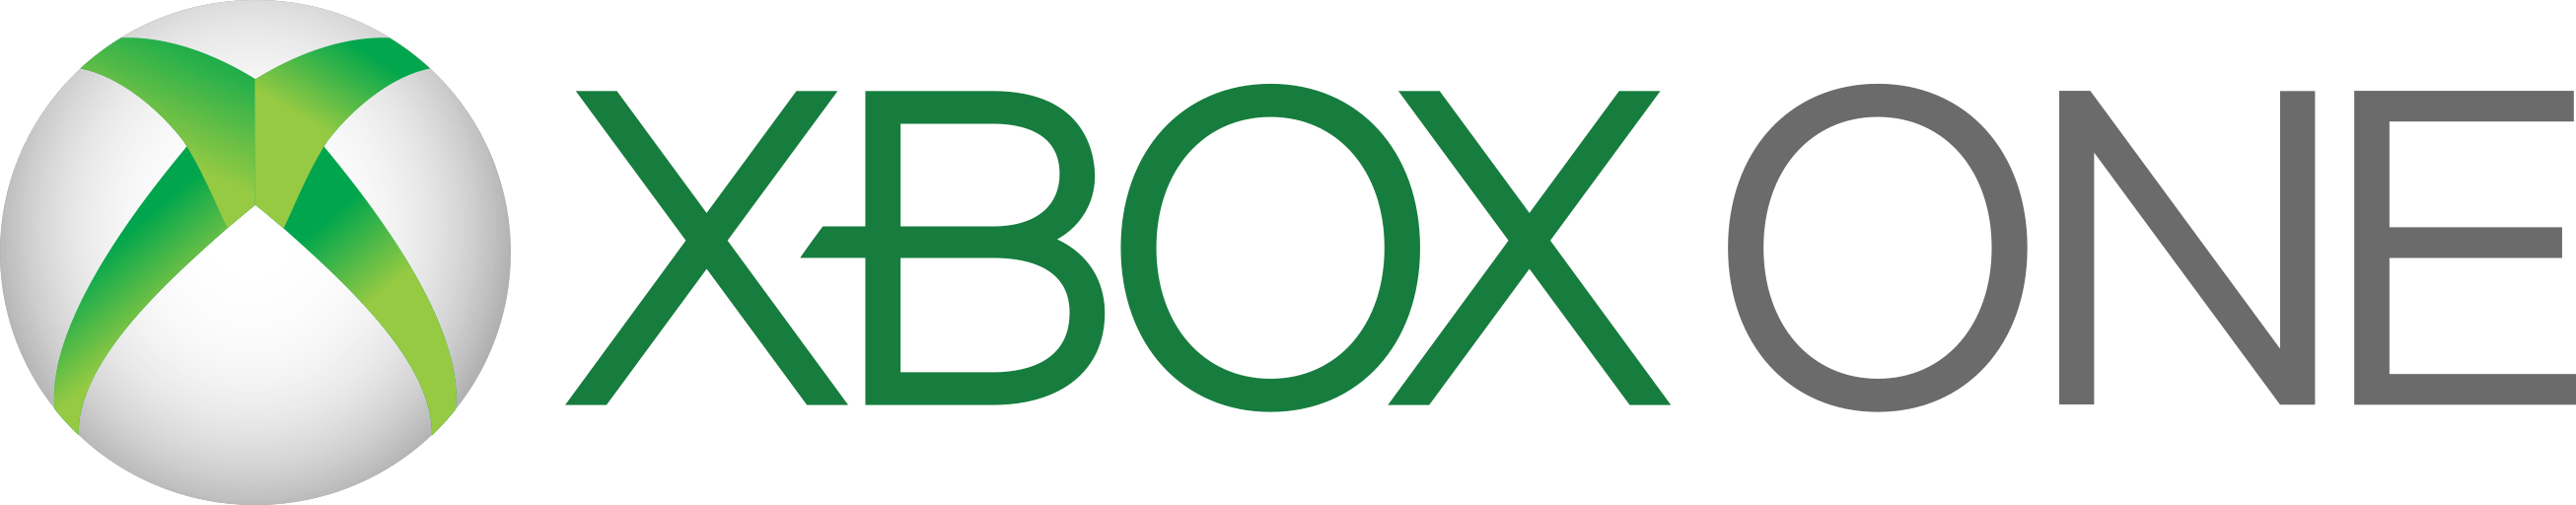 Xbox One Logo Transparent Png Stickpng